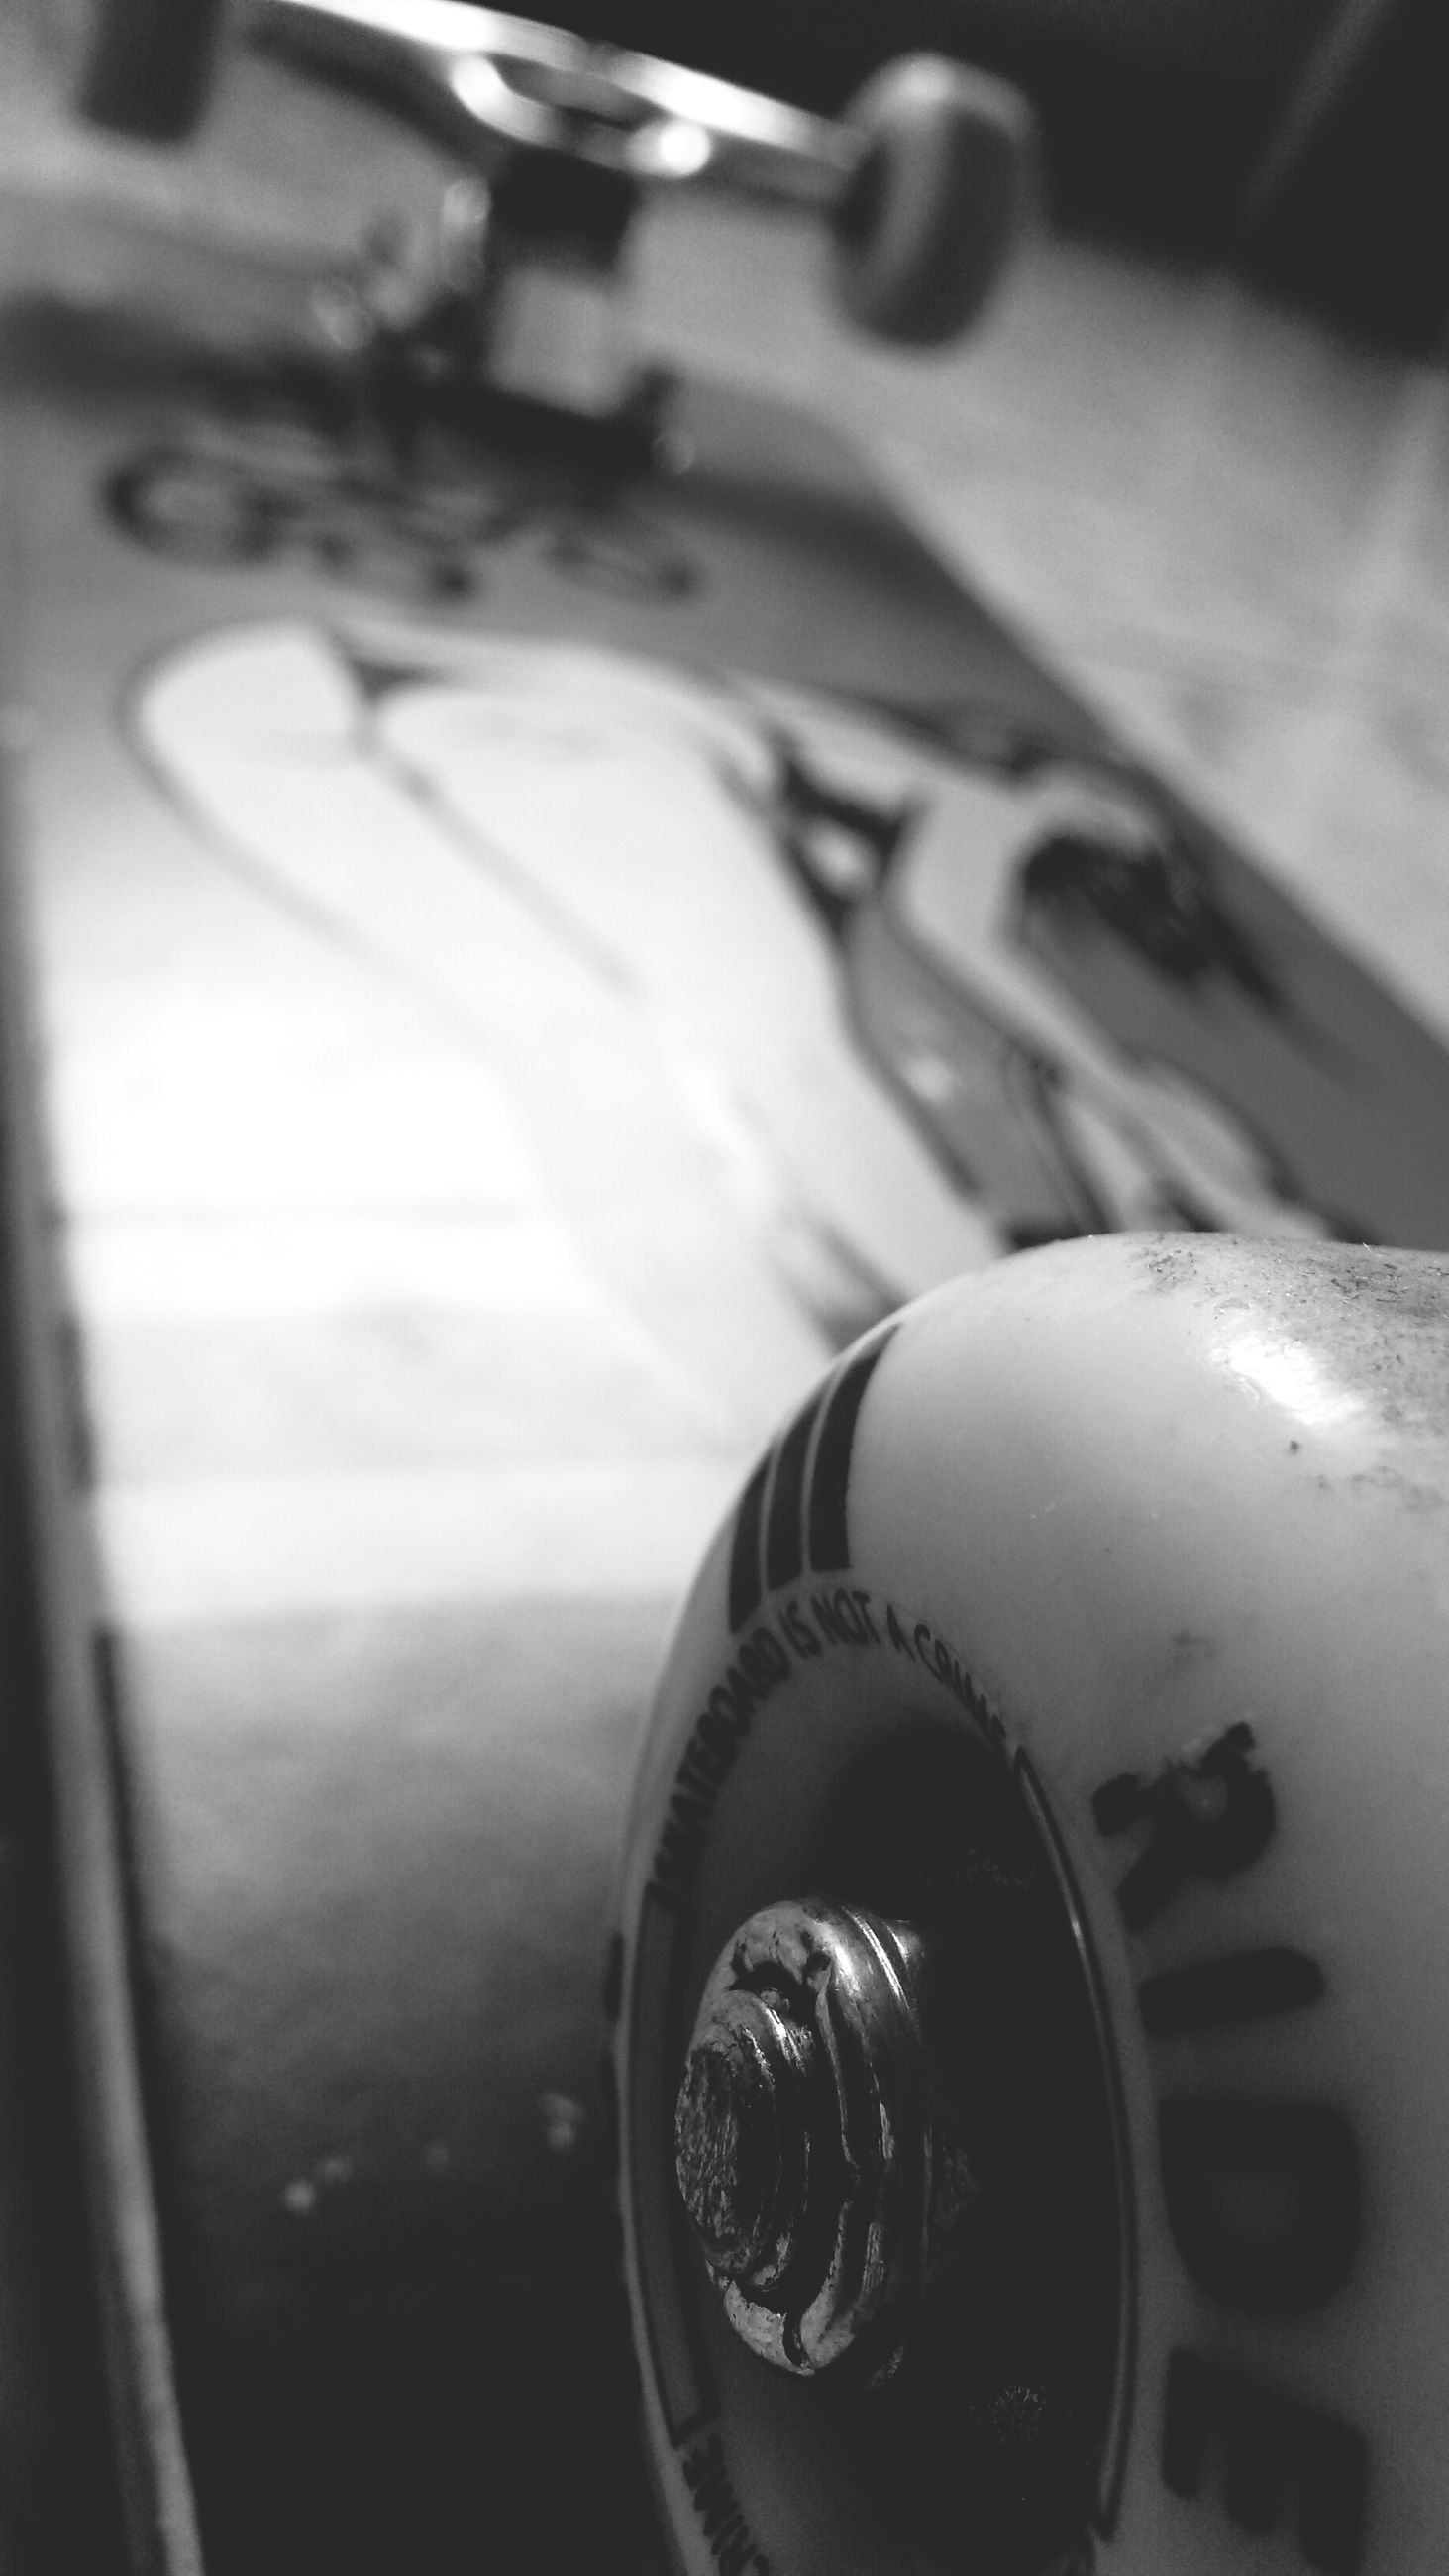 close-up, indoors, focus on foreground, still life, selective focus, part of, technology, single object, no people, metal, cropped, high angle view, transportation, equipment, shiny, day, old-fashioned, table, man made object, detail